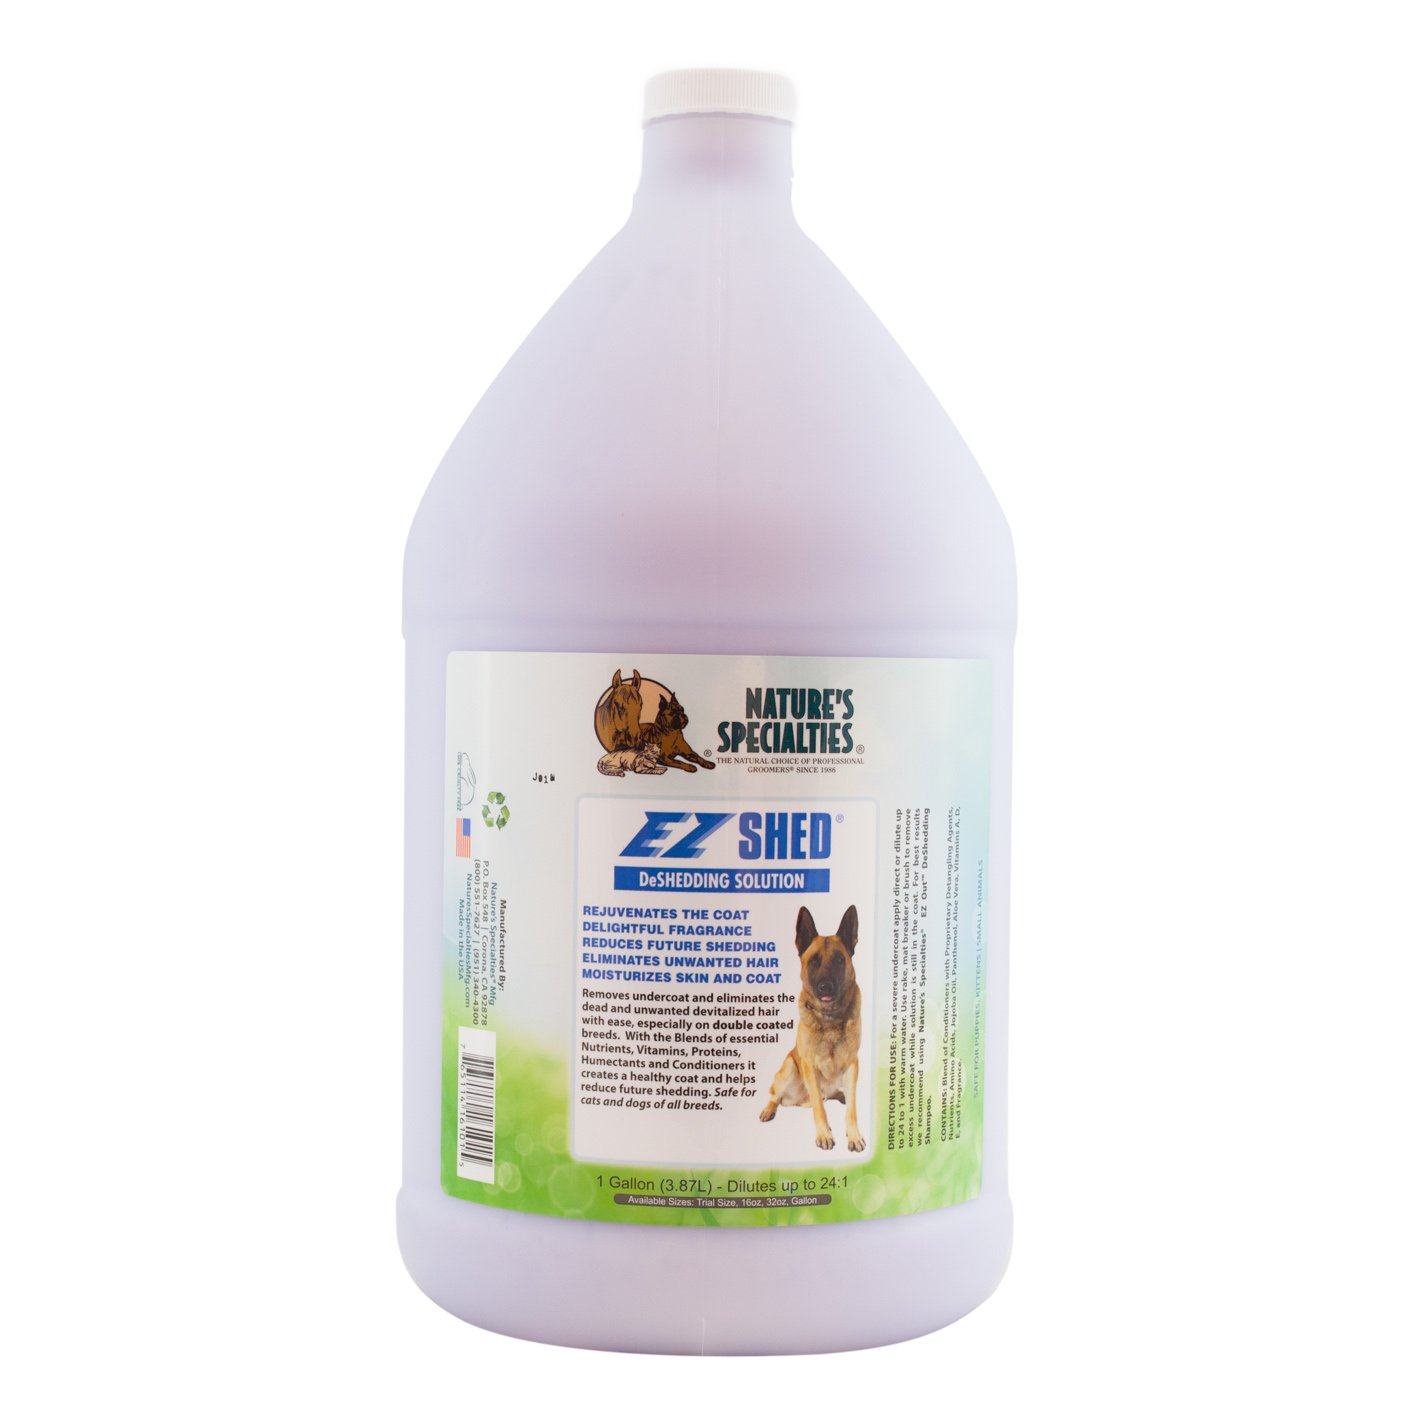 Nature's Specialties EZ Shed Conditioner for Pets by Nature's Specialties Mfg